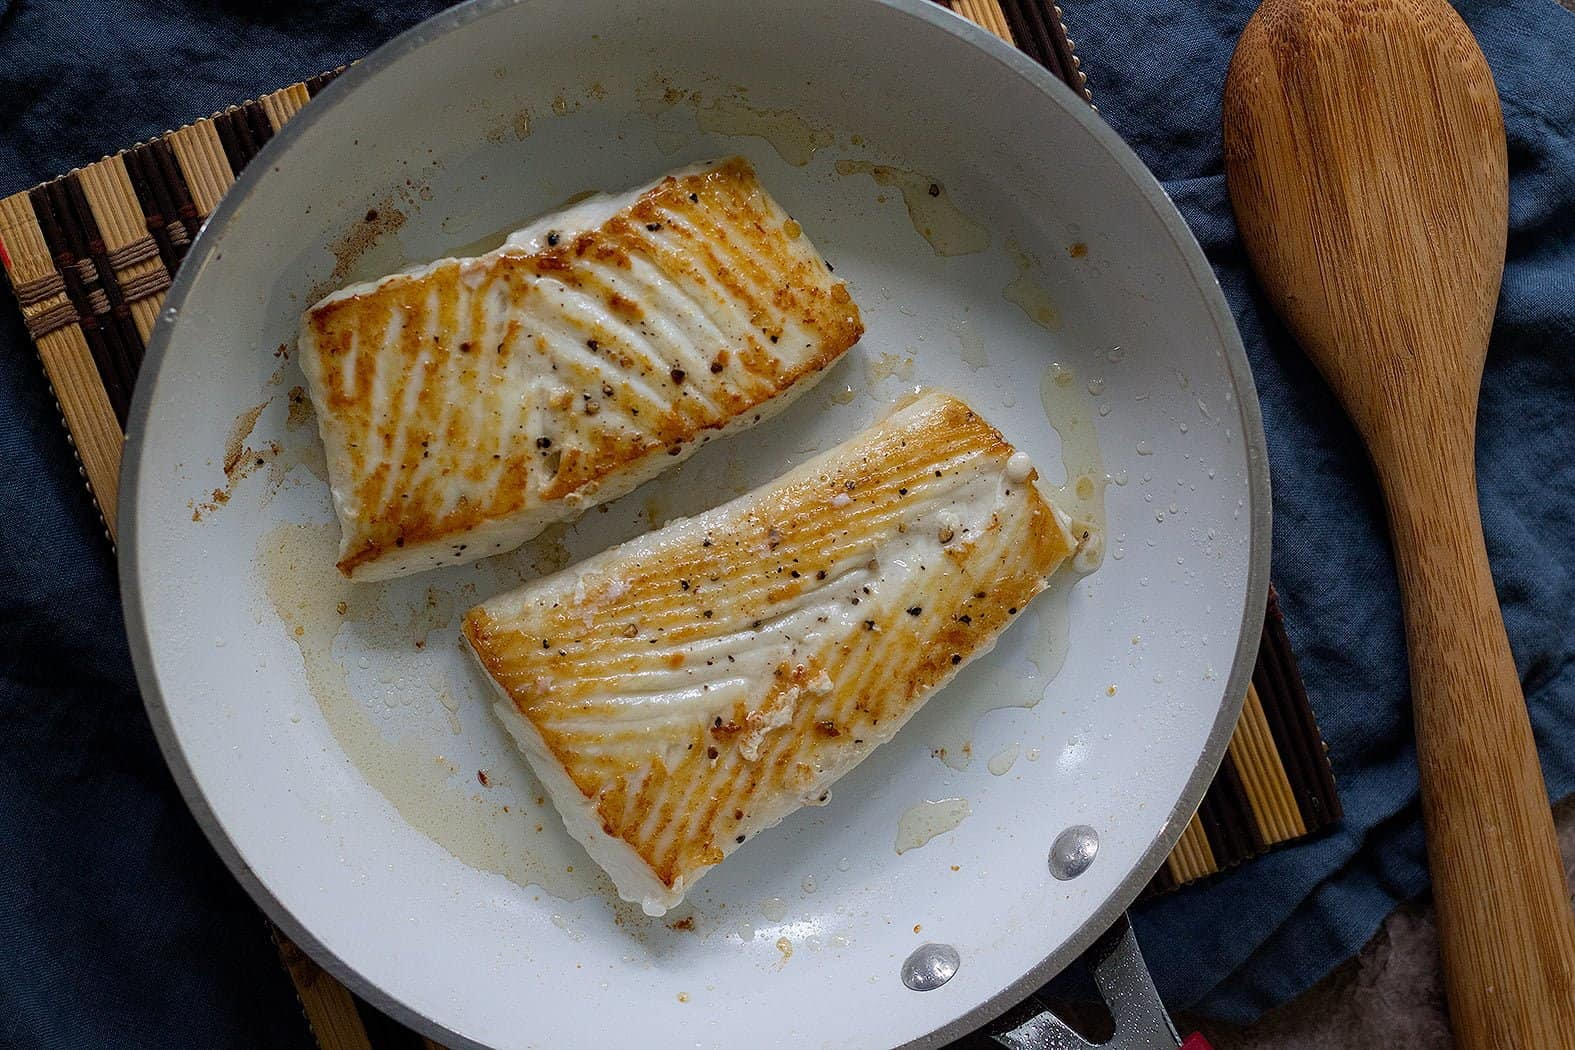 place the Alaska halibut fillets in the pan, seasoned side down. Sprinkle more salt and pepper on the top side. Pan-sear undisturbed for four to five minutes until it's golden brown and crispy.